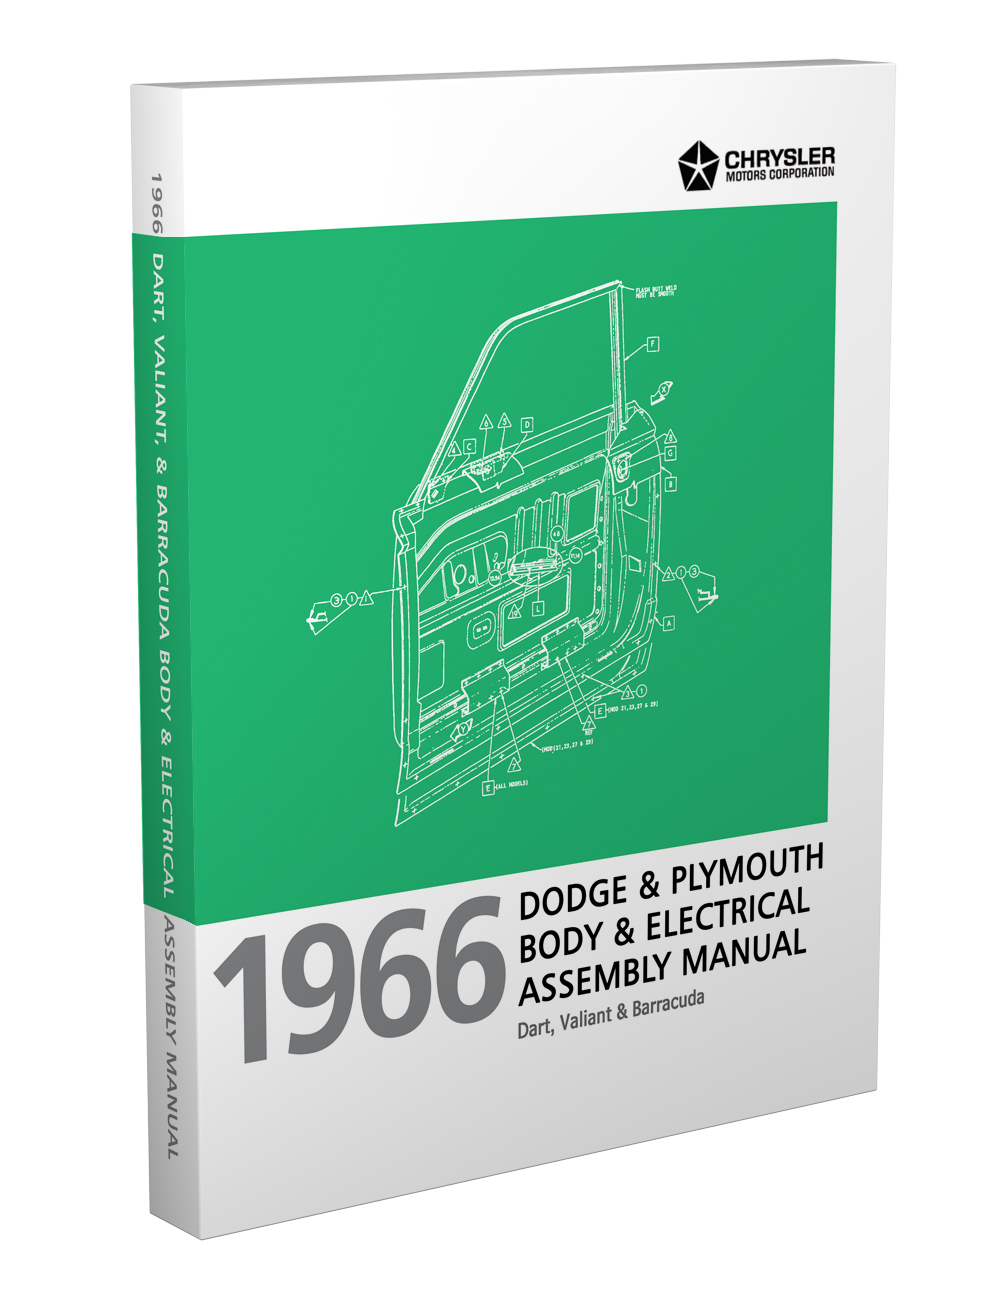 medium resolution of 1966 barracuda valiant and dart electrical and body assembly manual reprint